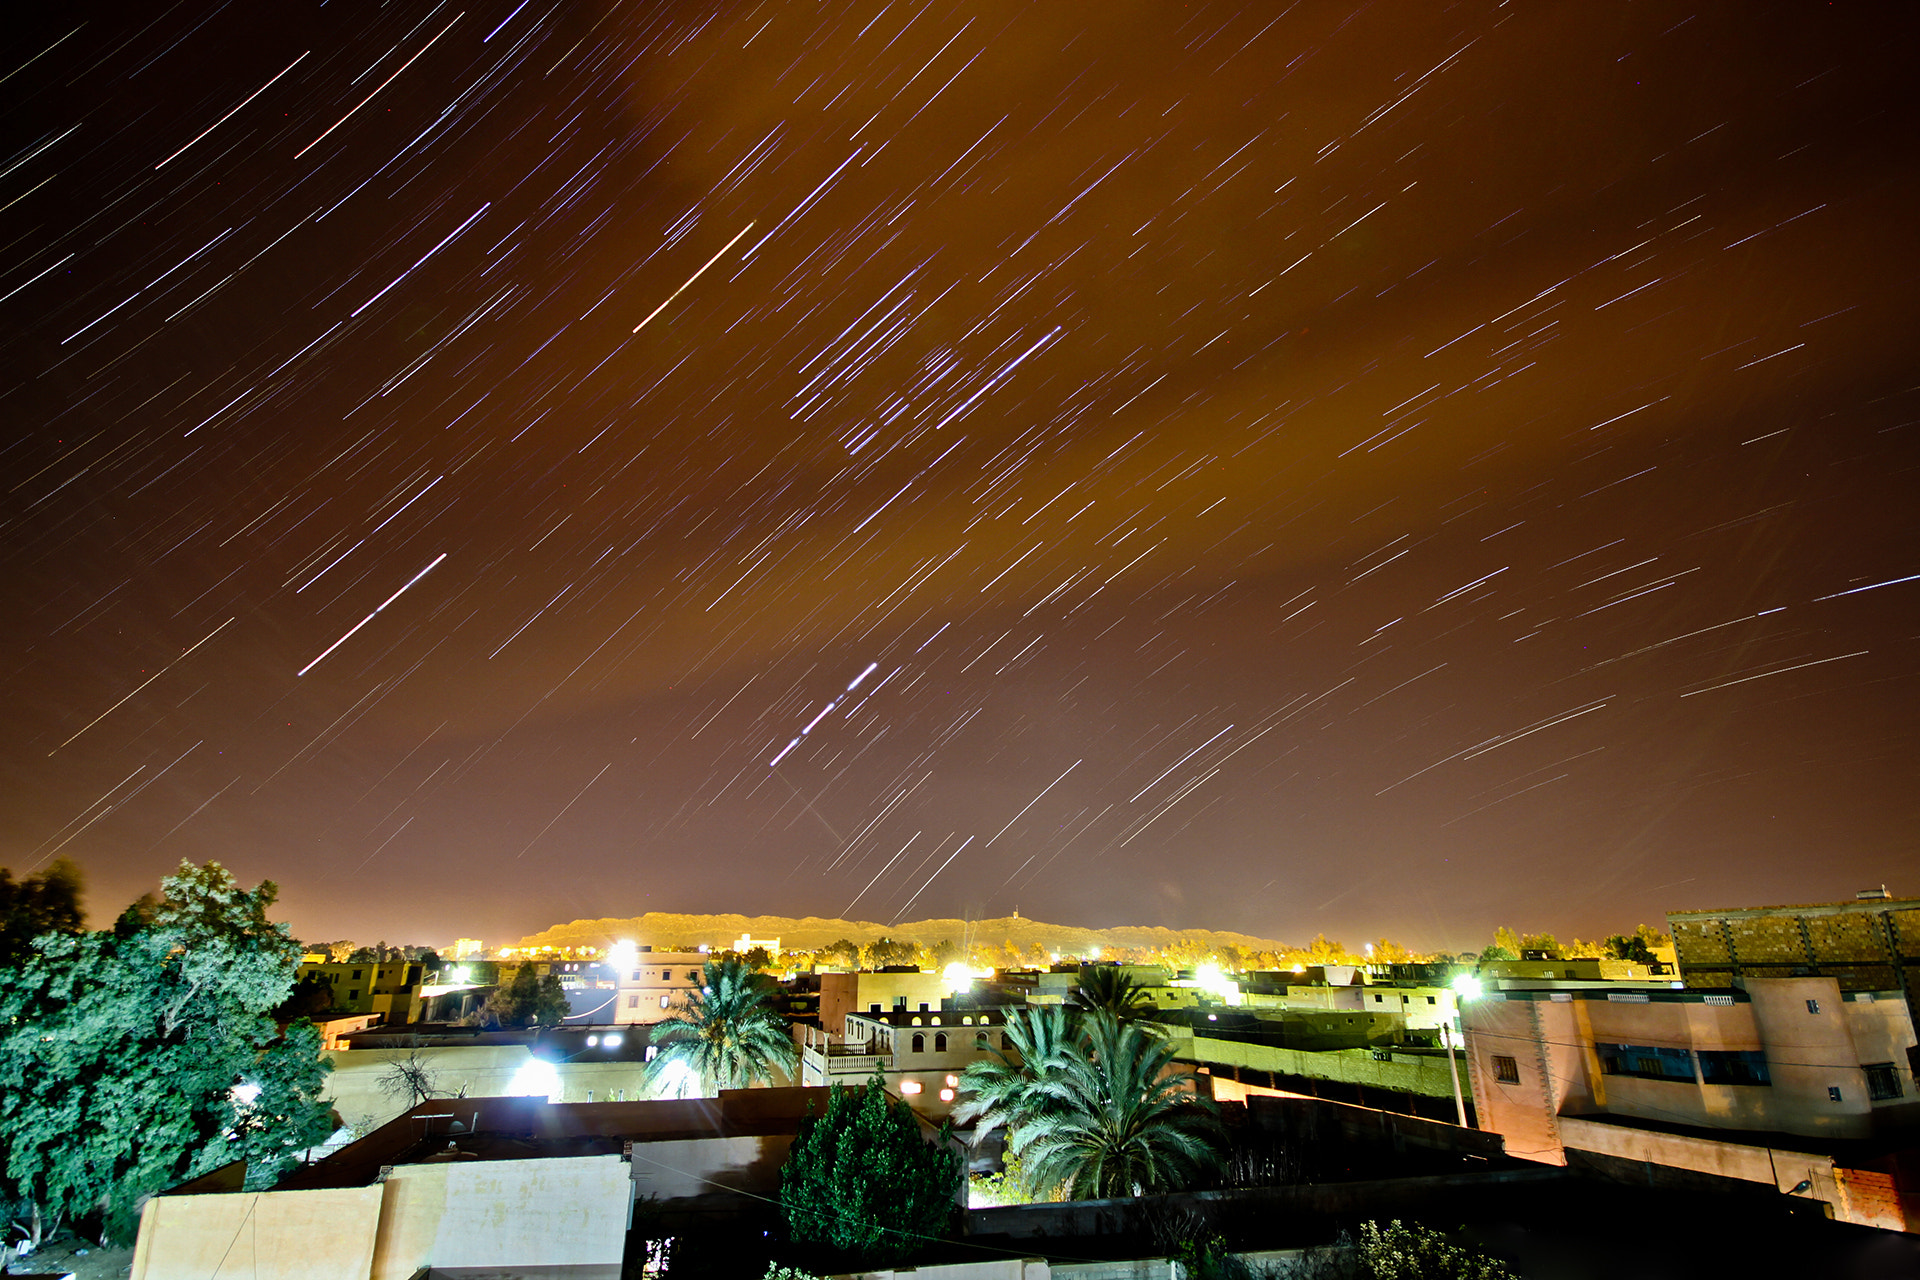 Photograph StarTrail by KESKAS  OUSSAMA on 500px